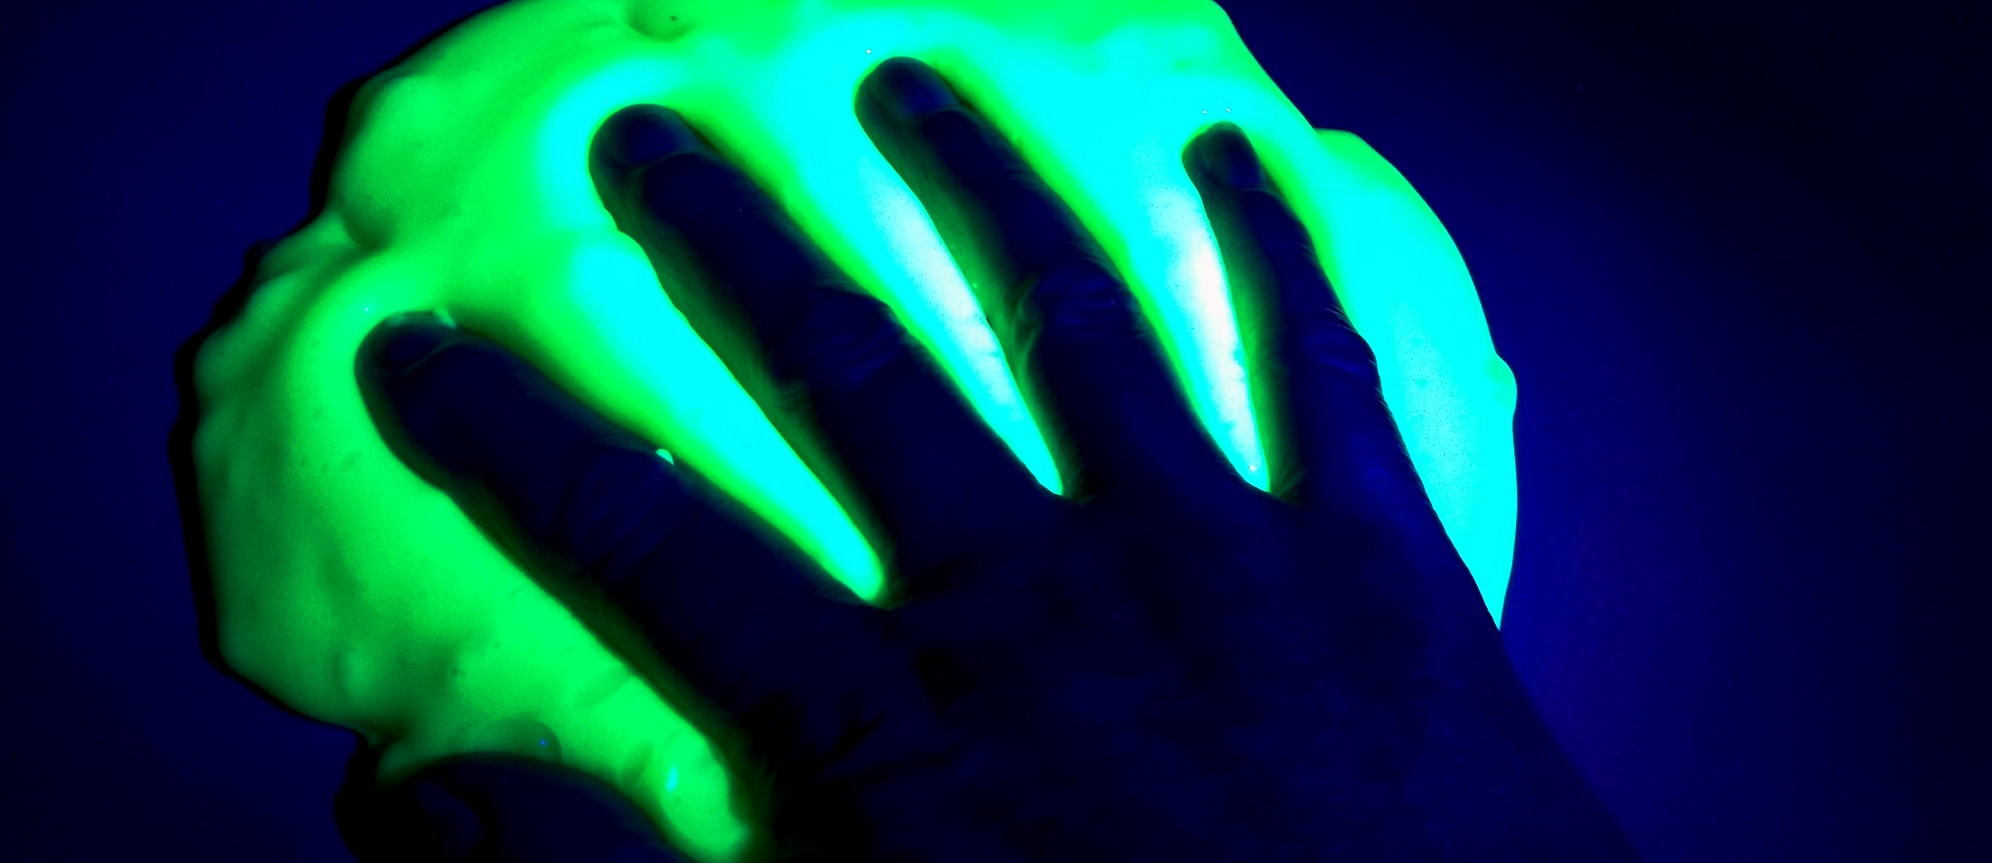 Spooky-Glowing-Fluorescent-Slime-Feature-image-2